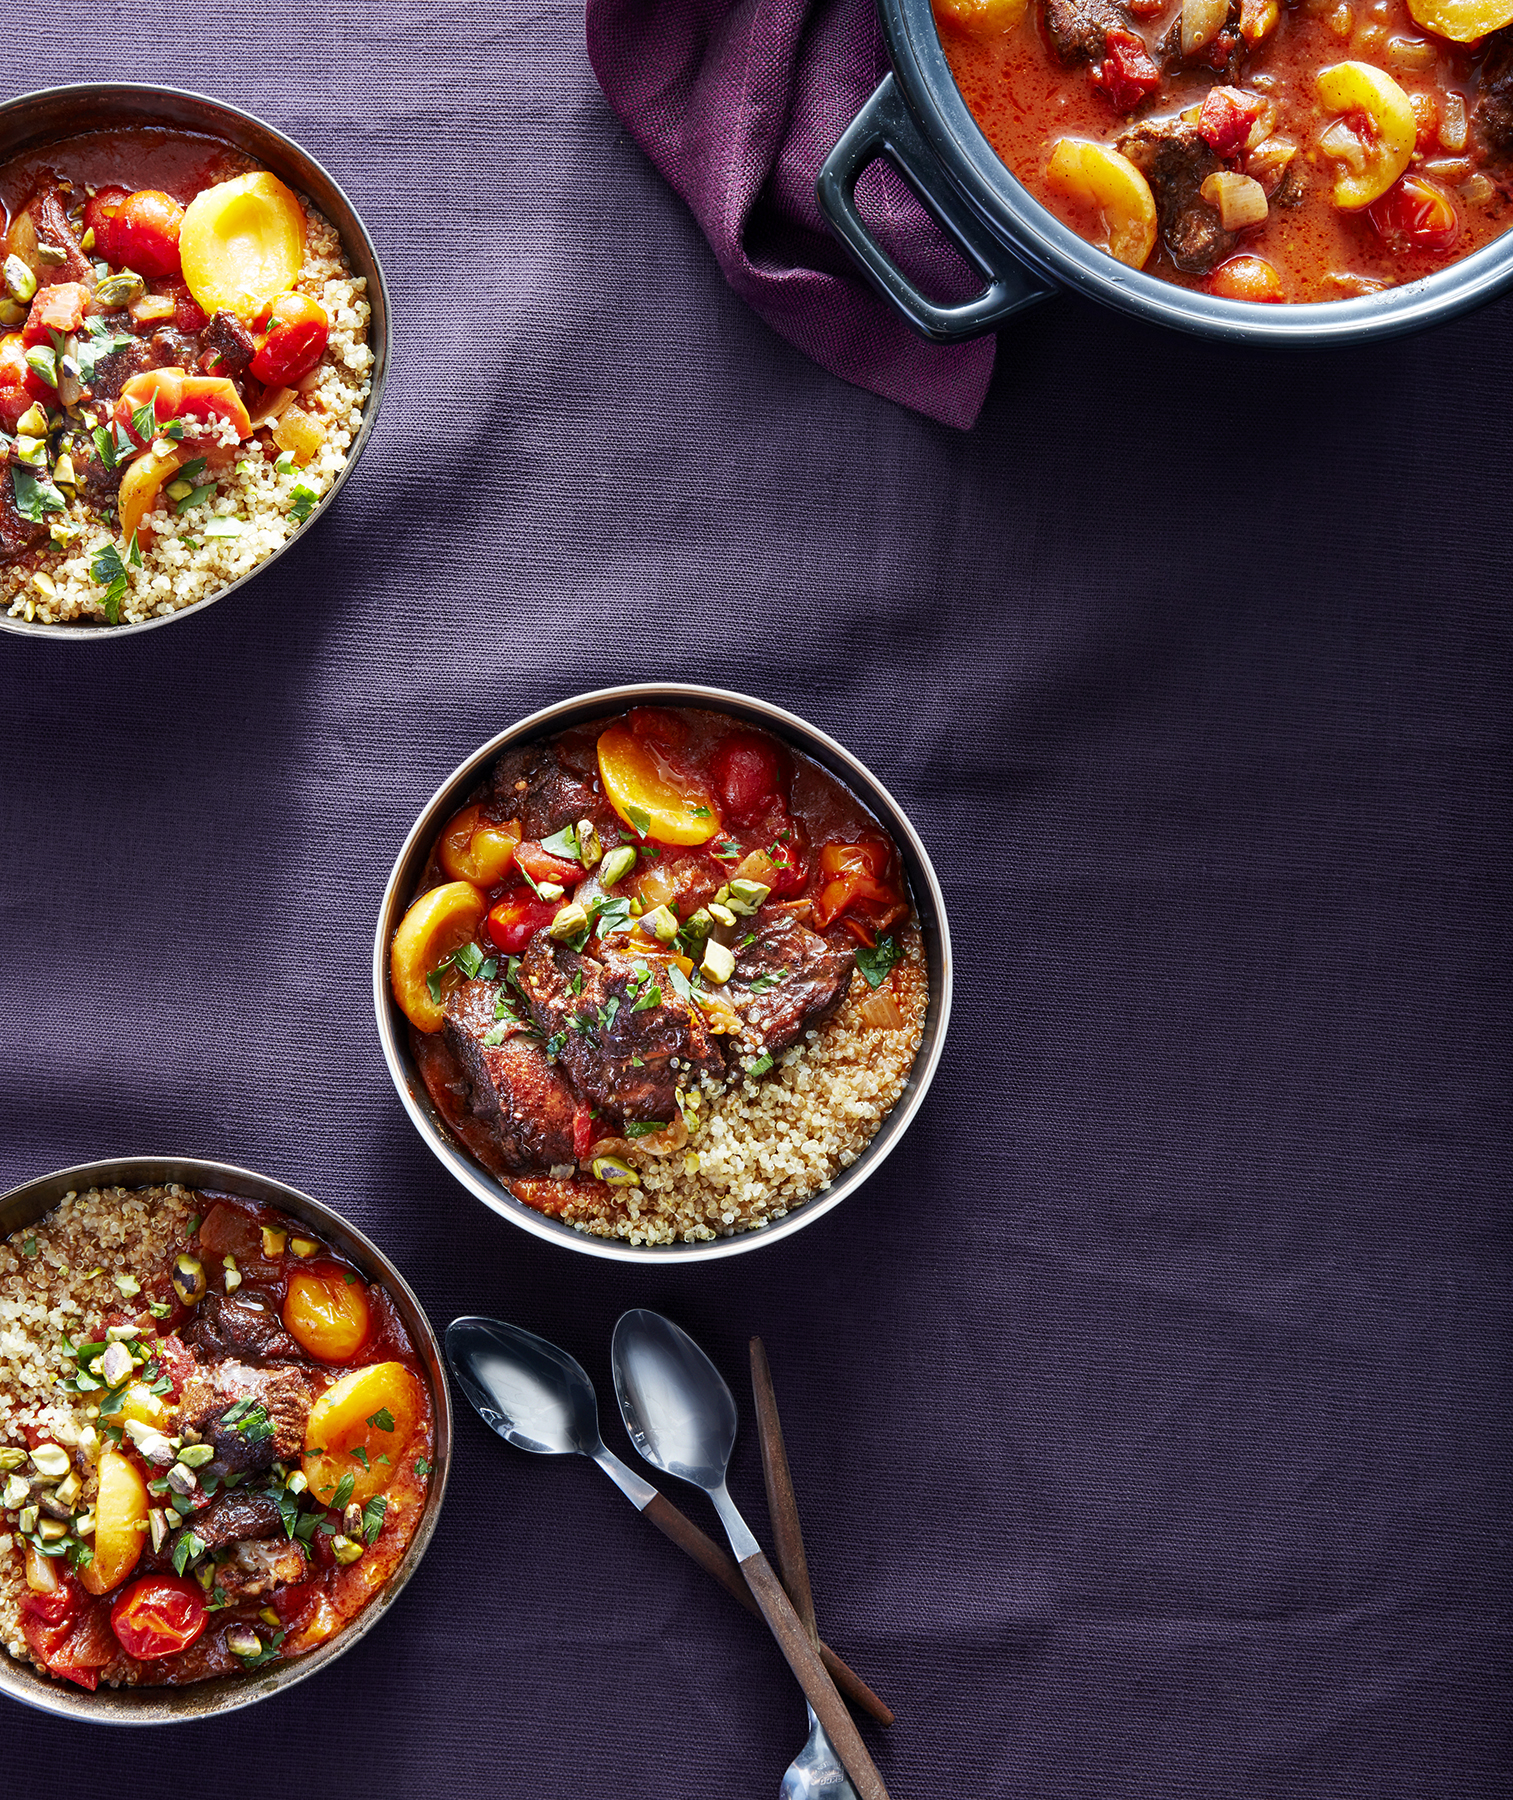 Chicken Tagine With Apricots and Pistachios